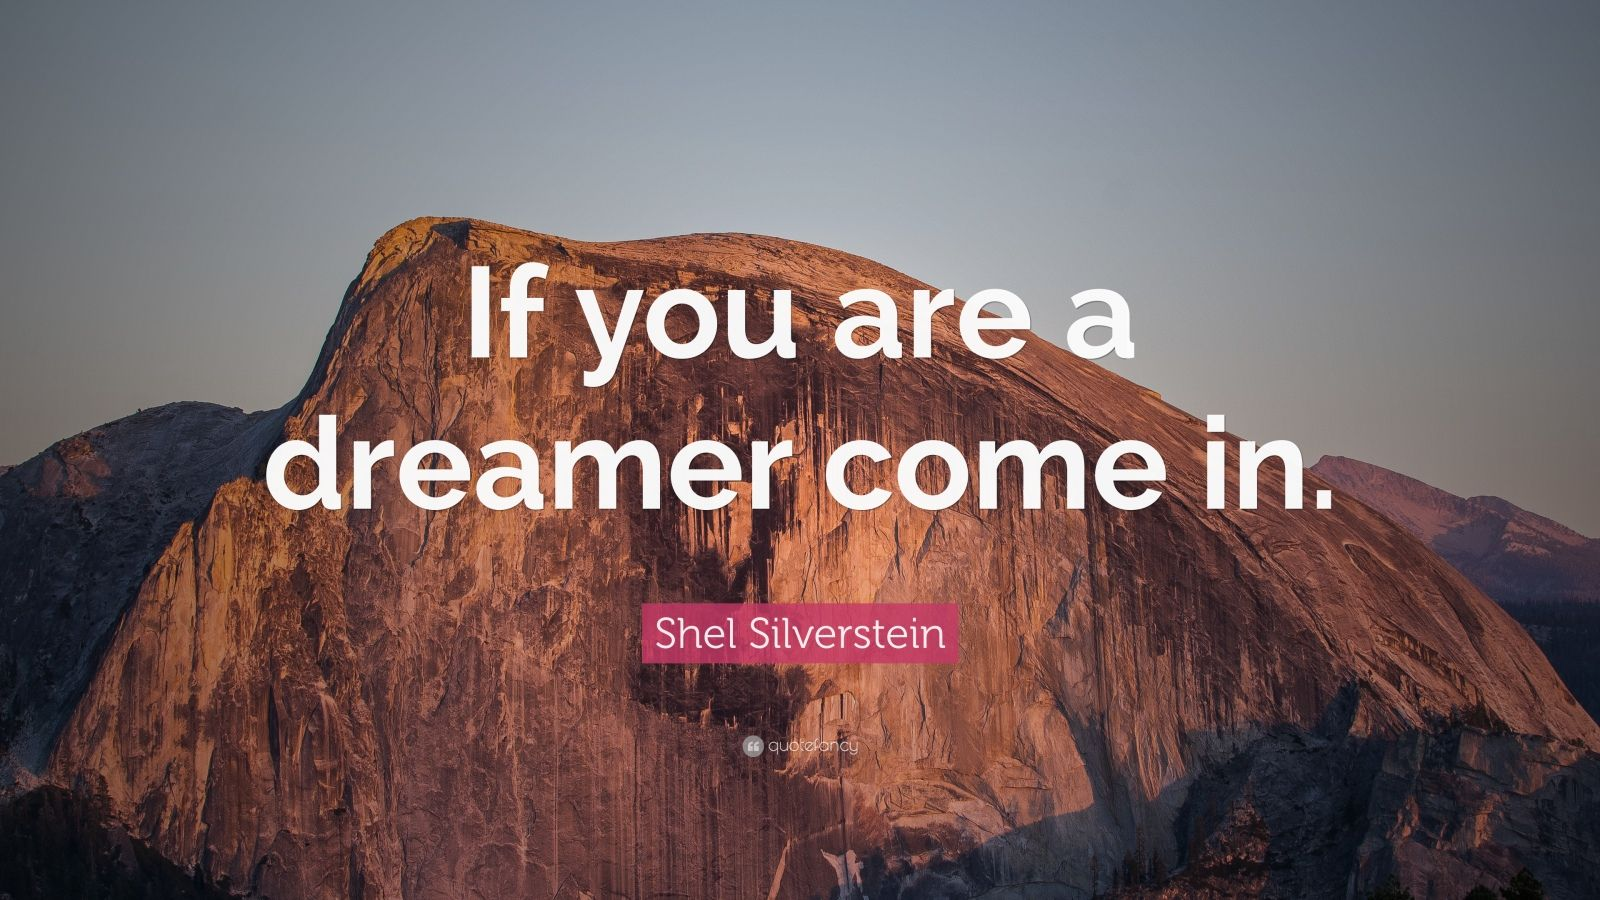 """Shel Silverstein Quotes About Life: Shel Silverstein Quote: """"If You Are A Dreamer Come In"""